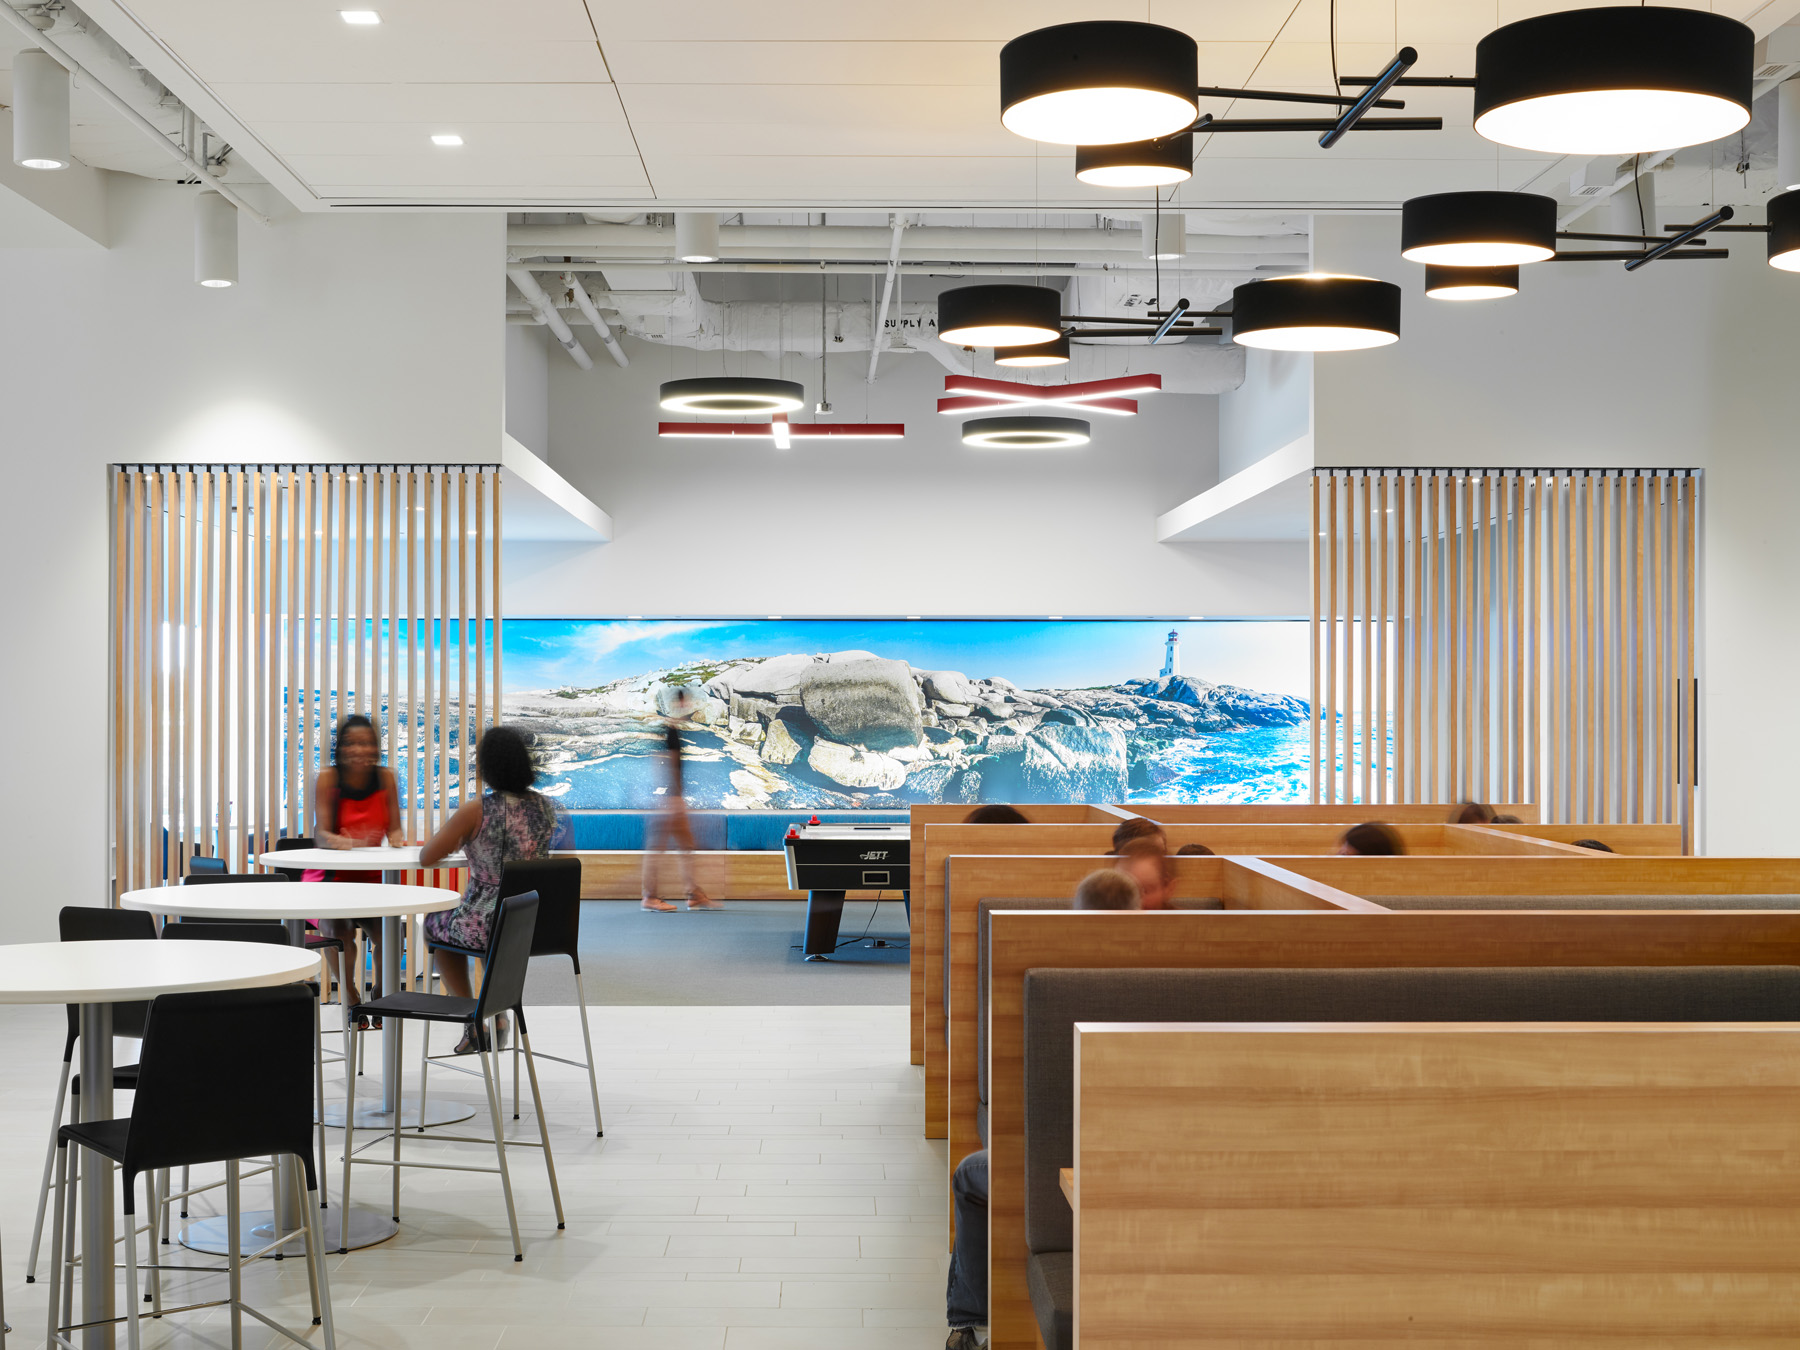 TJX lunchroom with wooden booths, air hockey table, and photographic panorama mural of rocky landscape on wall